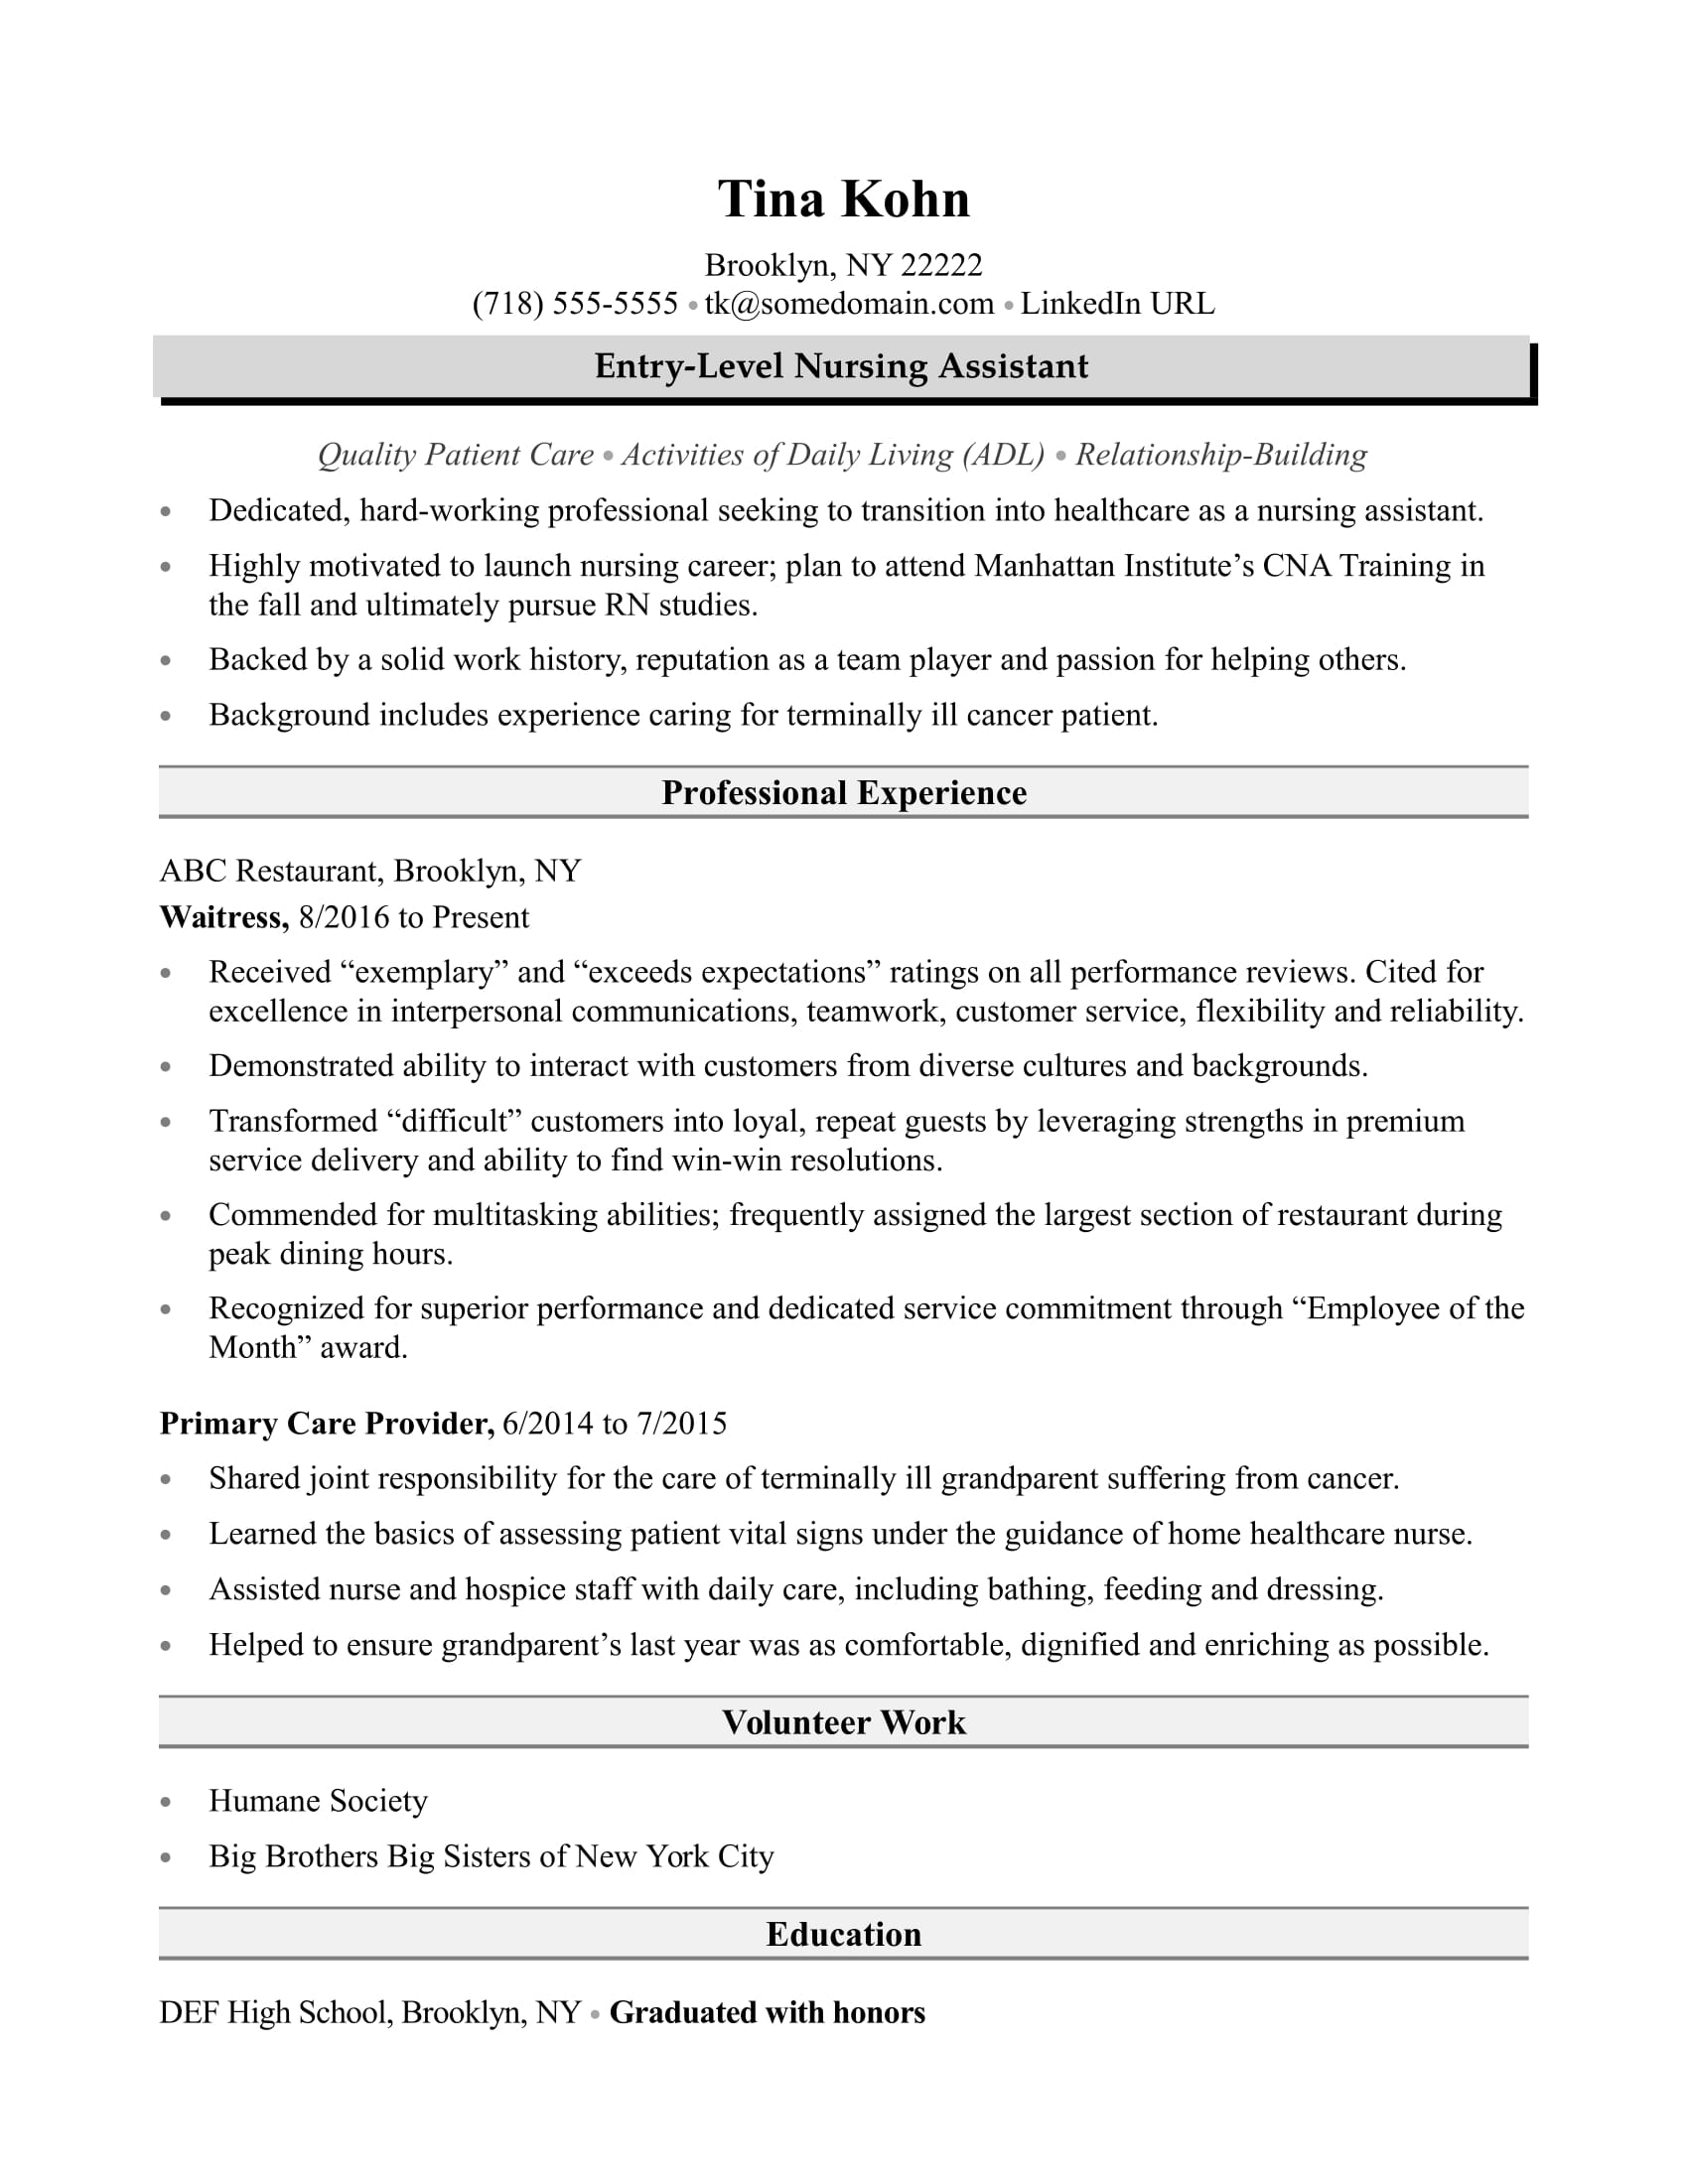 resume Nursing Assistant Resume nursing assistant resume sample monster com sample